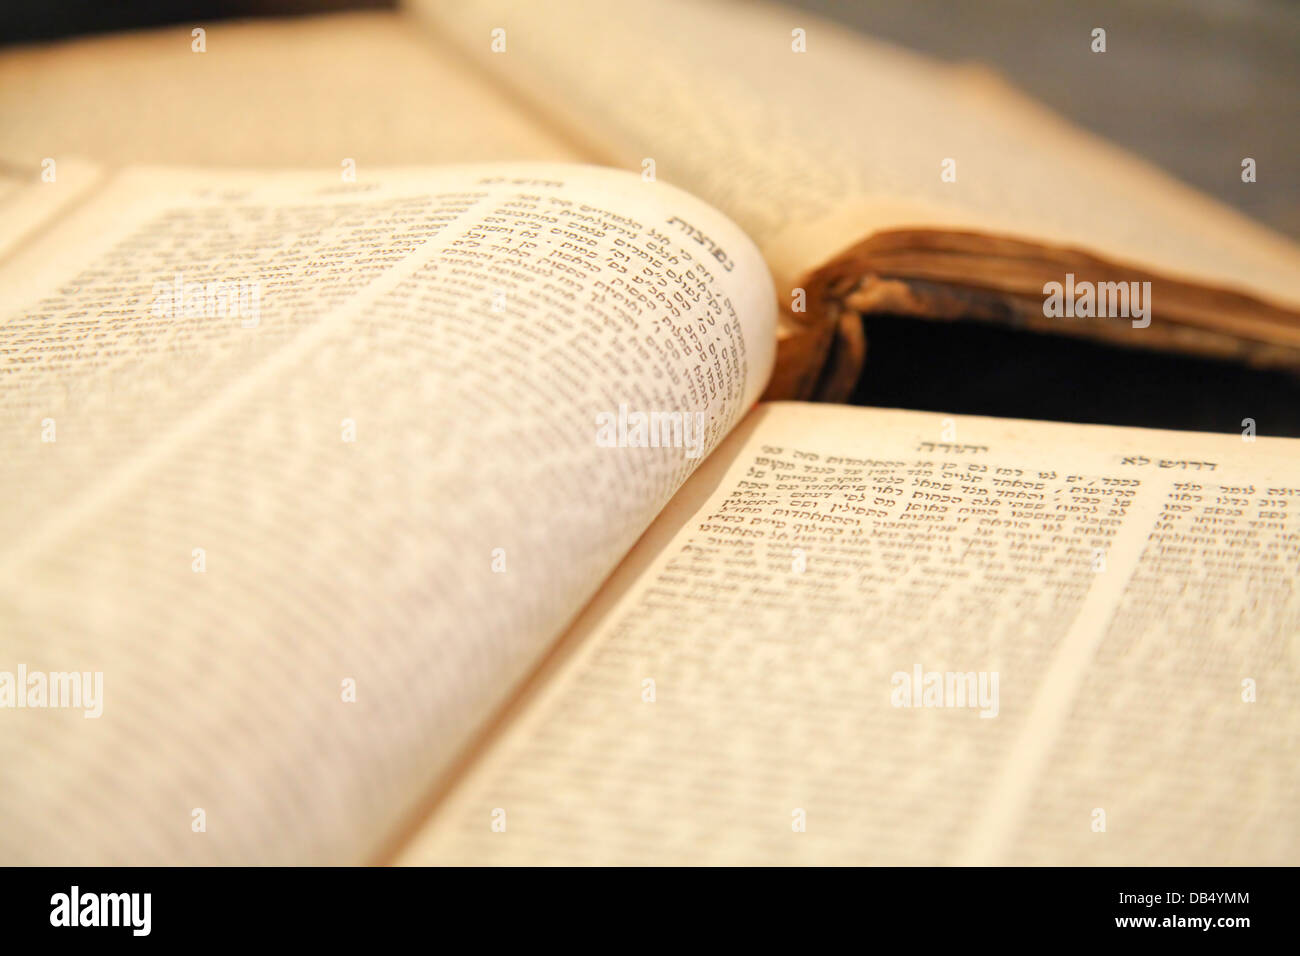 Ancient Tehilim (Psalms) book, at the Babylonian Jewry heritage center - Stock Image